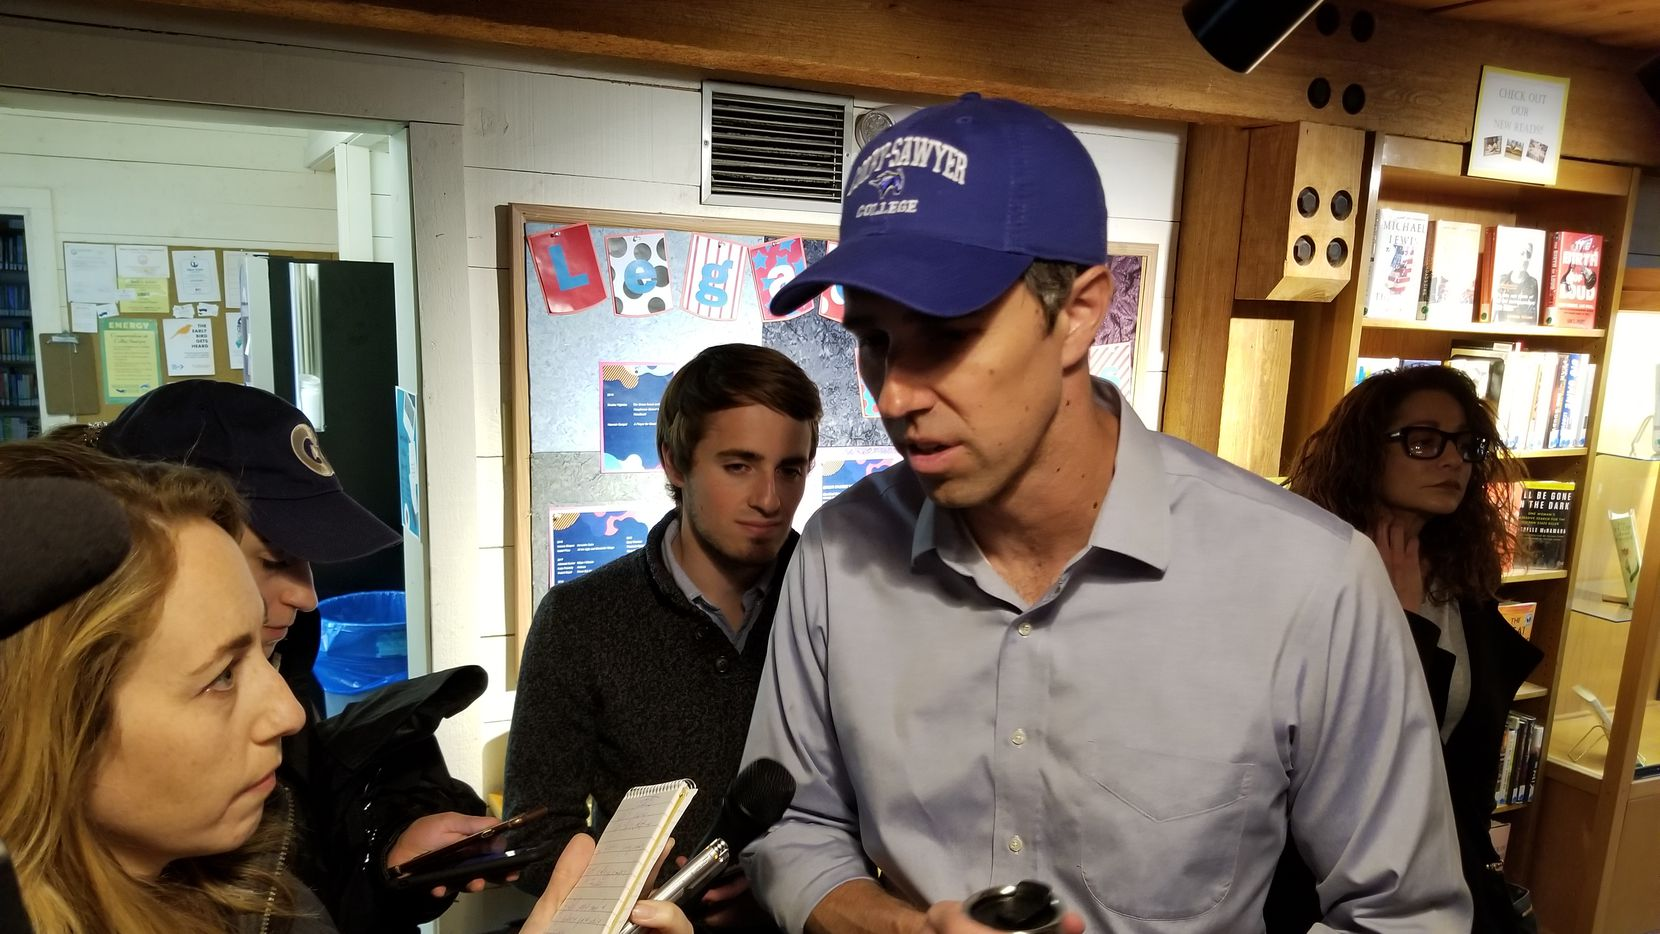 Former El Paso Representative Beto O'Rourke's campaign for the Democratic nomination for president has taken a hit with former Vice President Joe Biden's entrance in the race.